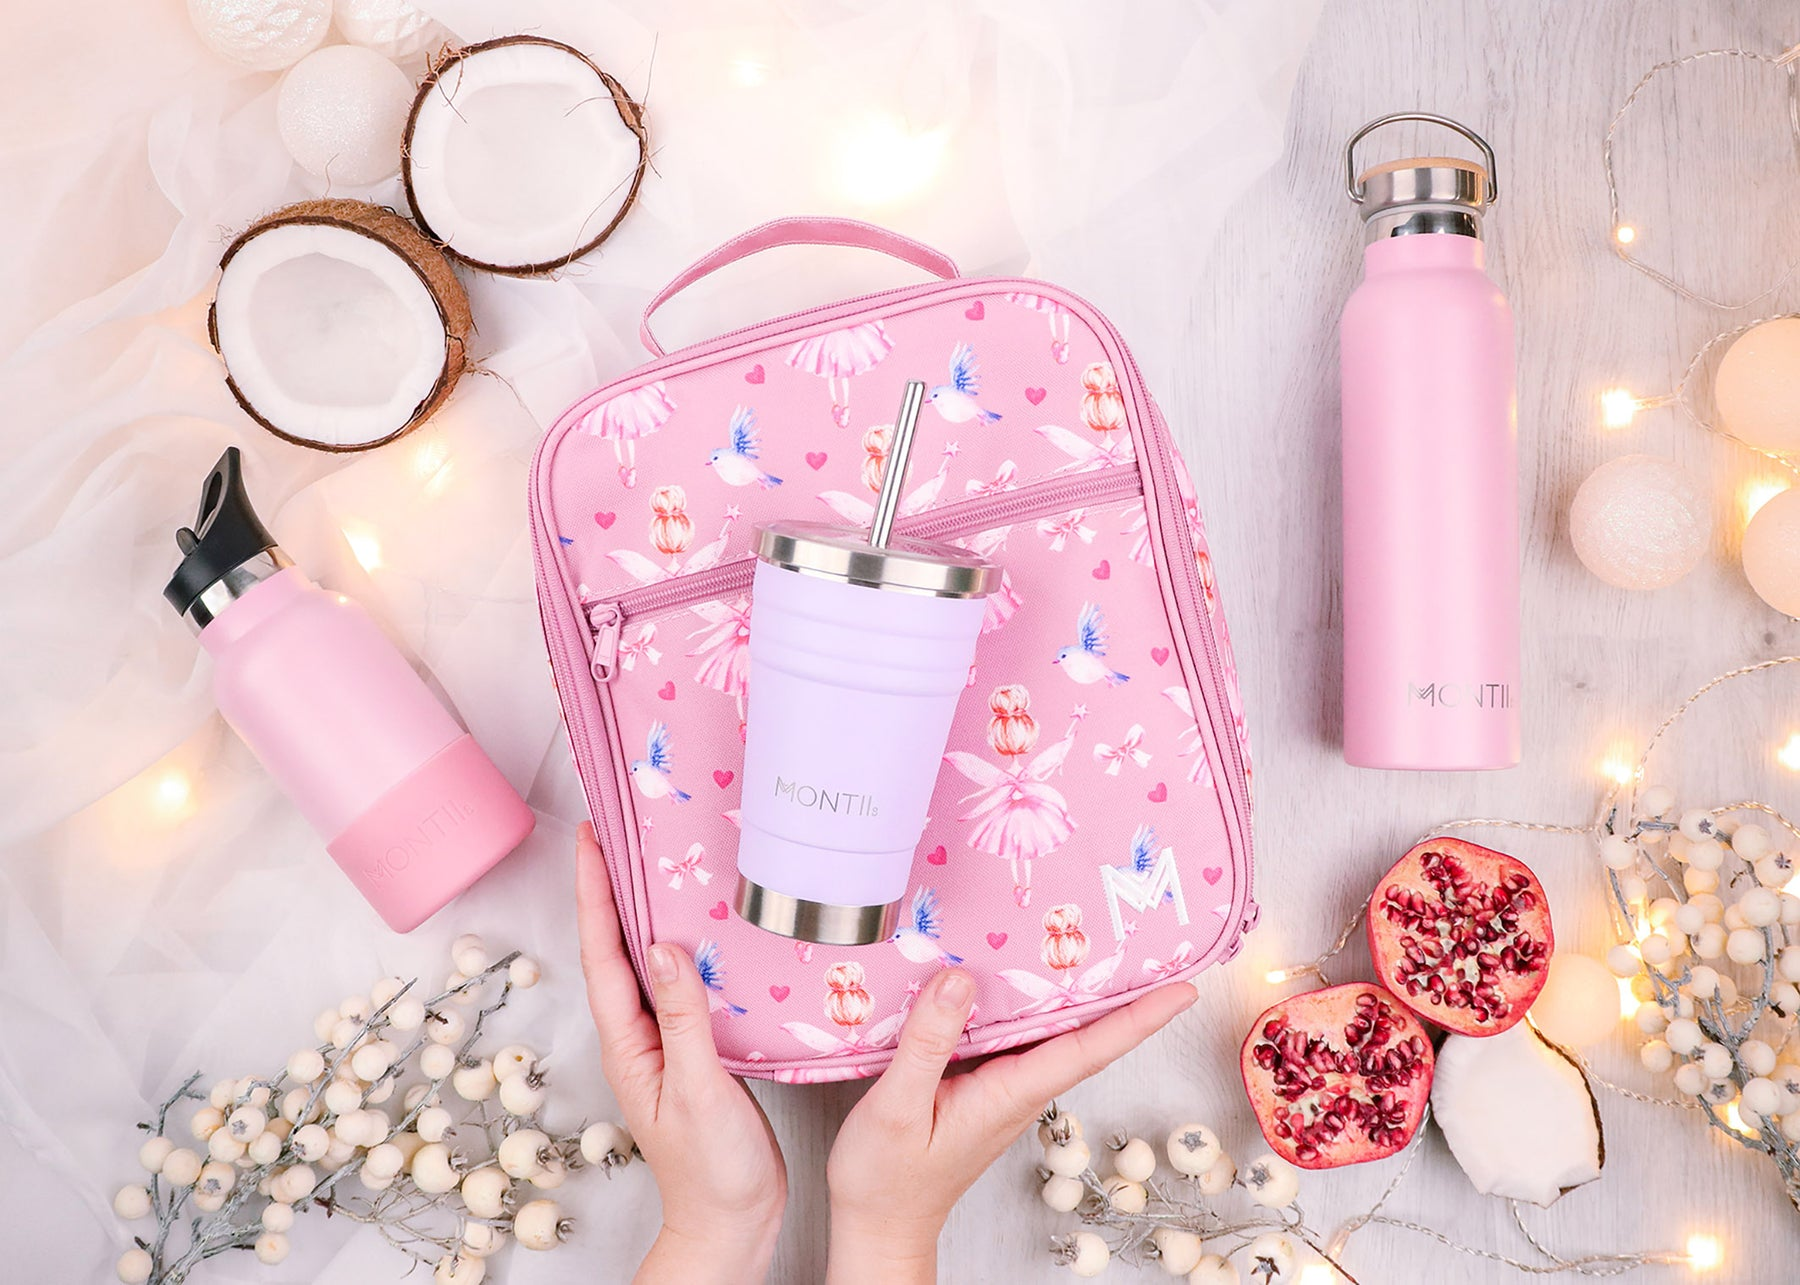 This is a Photo Of Montiico Products Mini Bottle Dusty Pink, Insulated Fairy Lunch Bag and Original Drink Bottle In Dusty Pink.